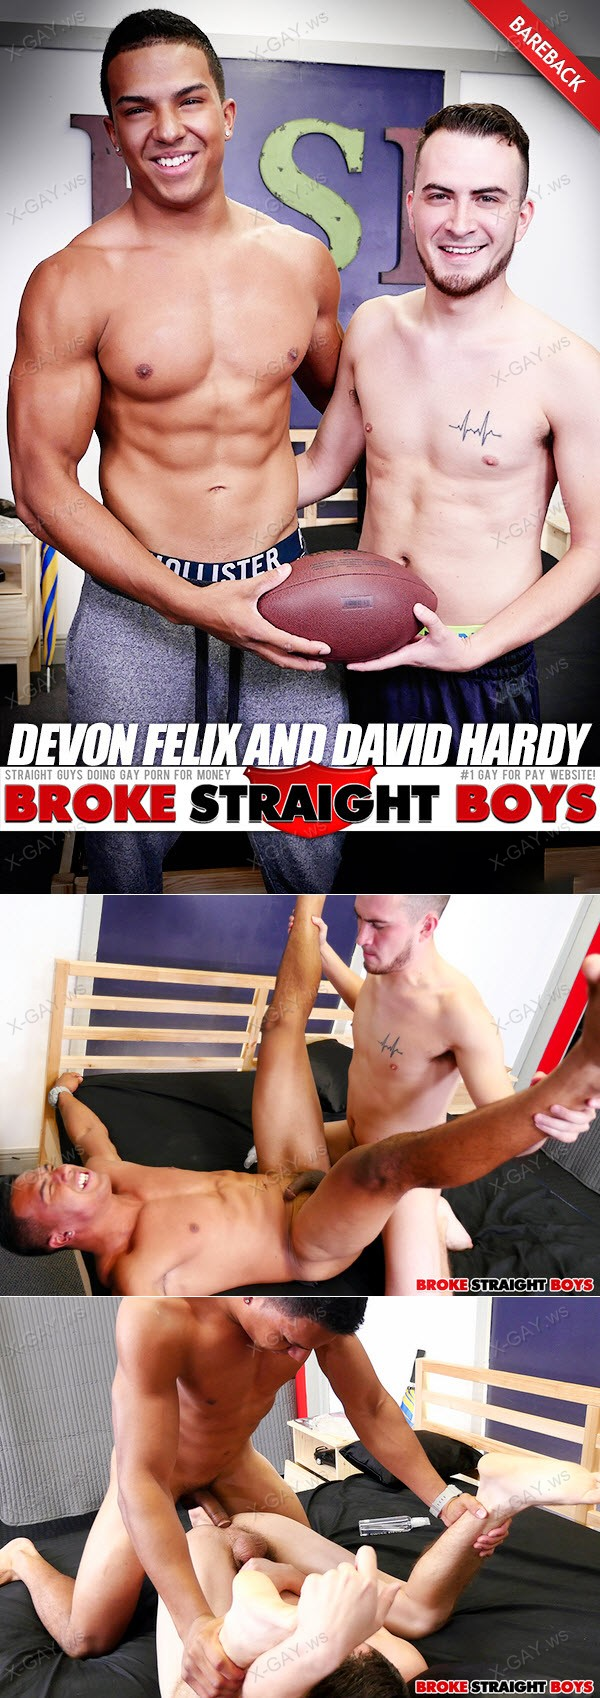 BrokeStraightBoys: Devon Felix, David Hardy (RAW, Flip Fuck)